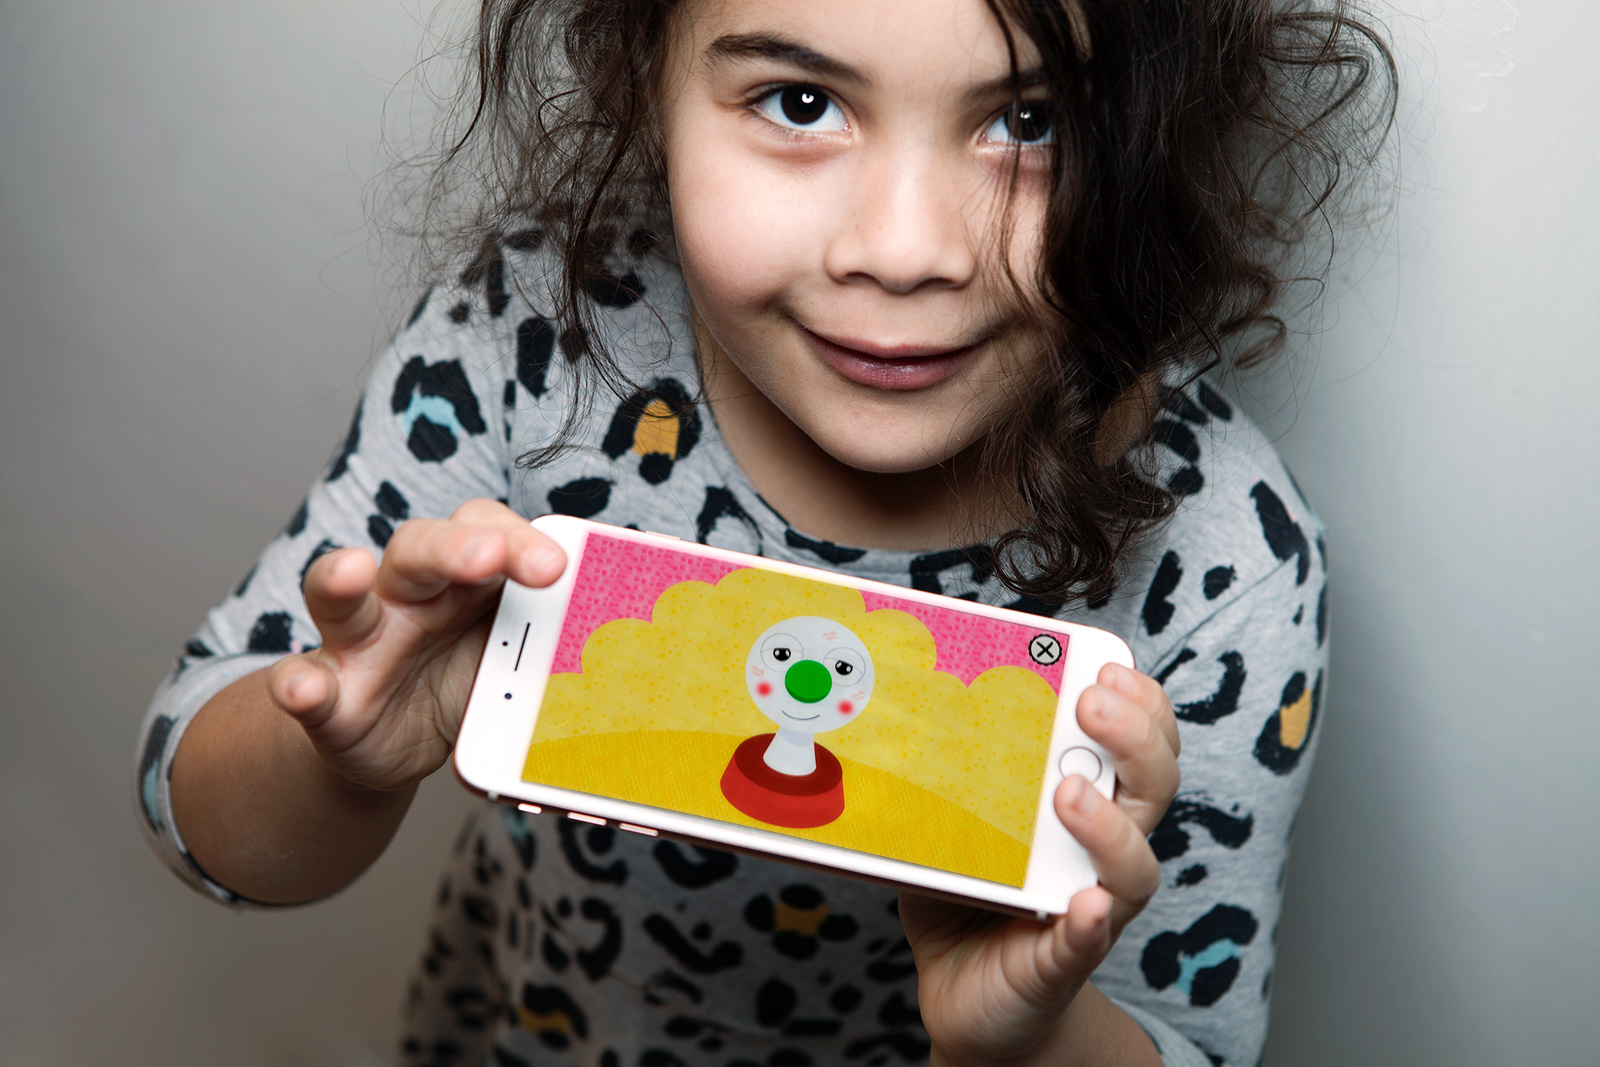 Buu-klubben app is made for children aged 3-7 yr. Demo workshops were made with kids several times during prototyping.